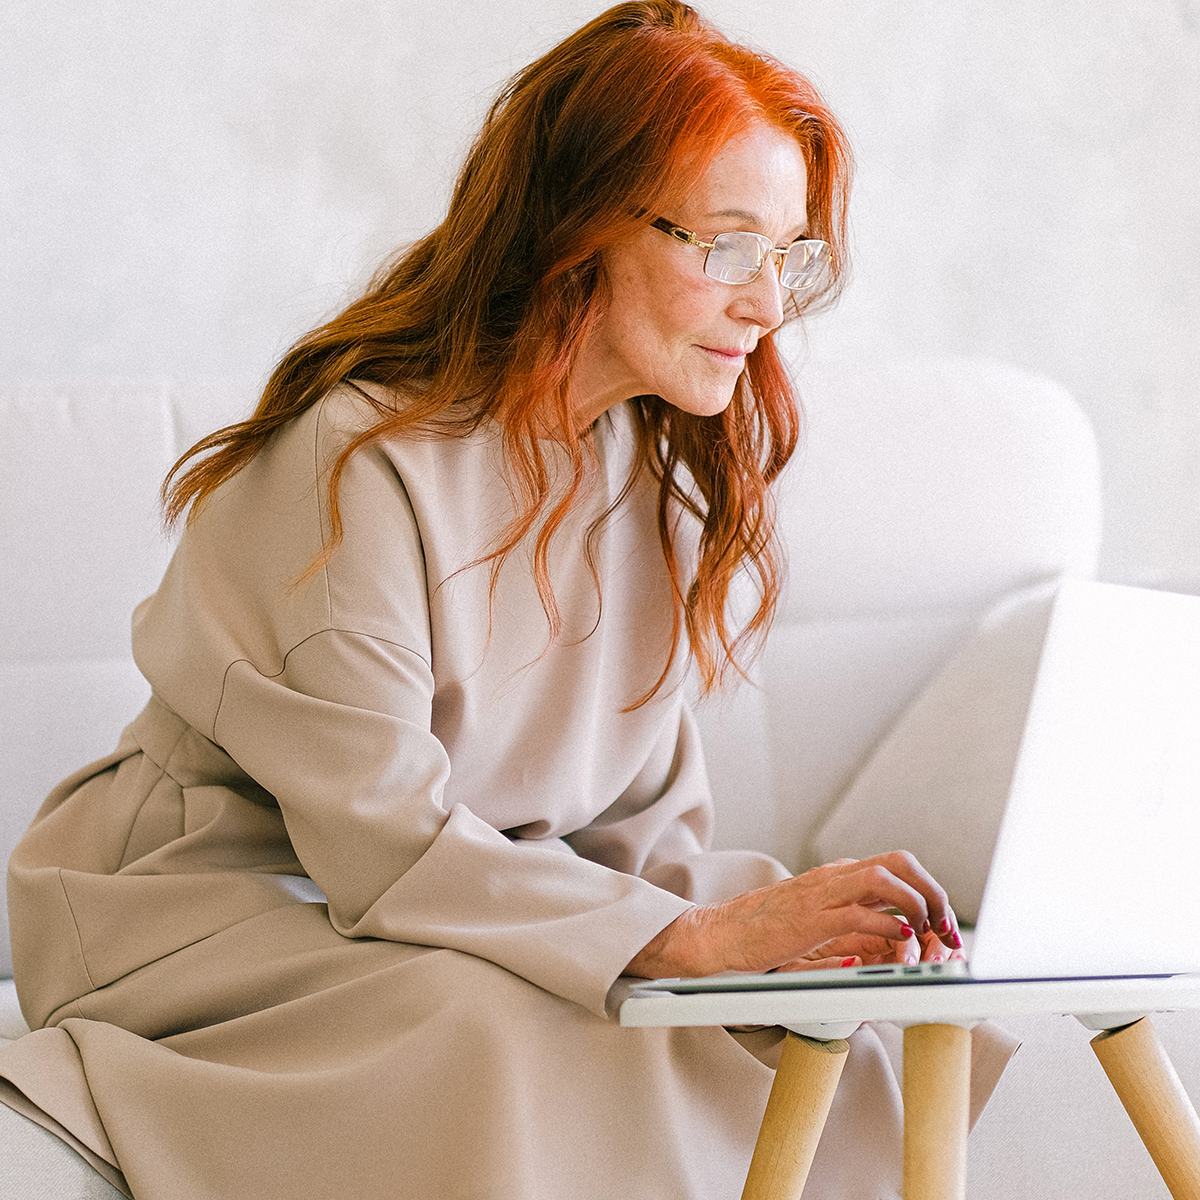 woman looking at luxury homes for sale on laptop